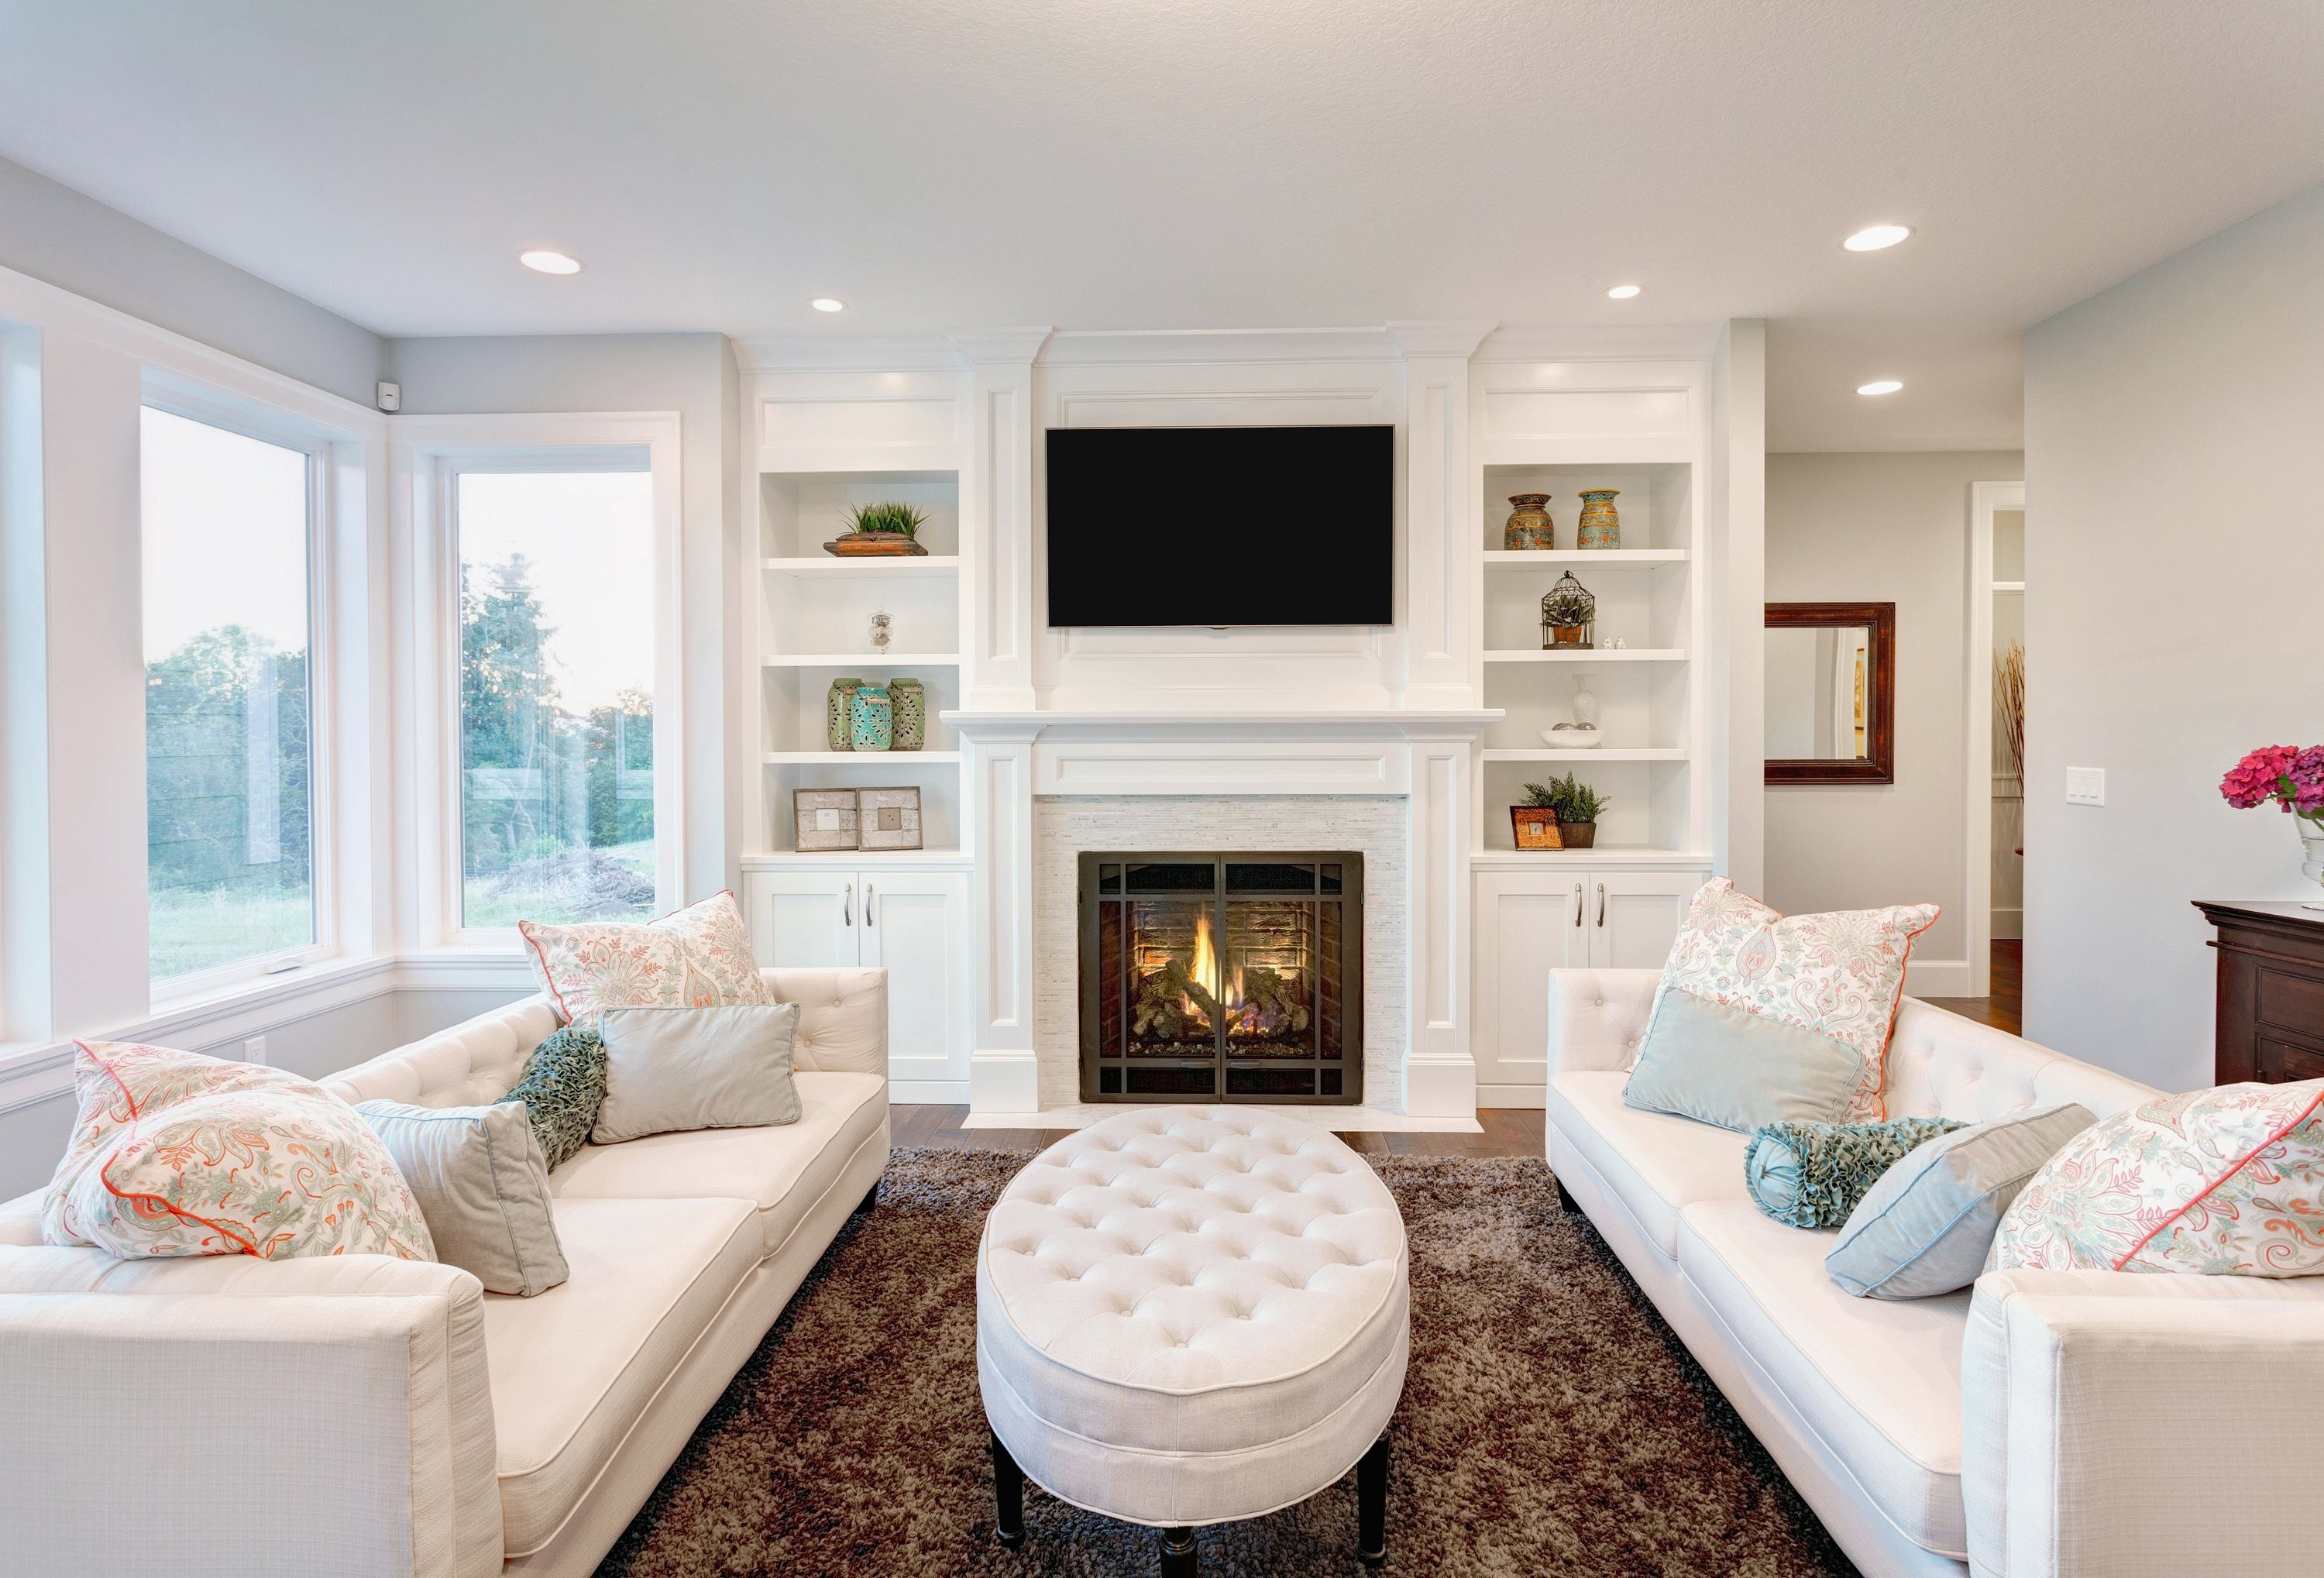 Interior White Wicker Couch With Decorative Sofa Pillows Over Glamorous Design Ideas For Living Rooms With Fireplace Design Decoration